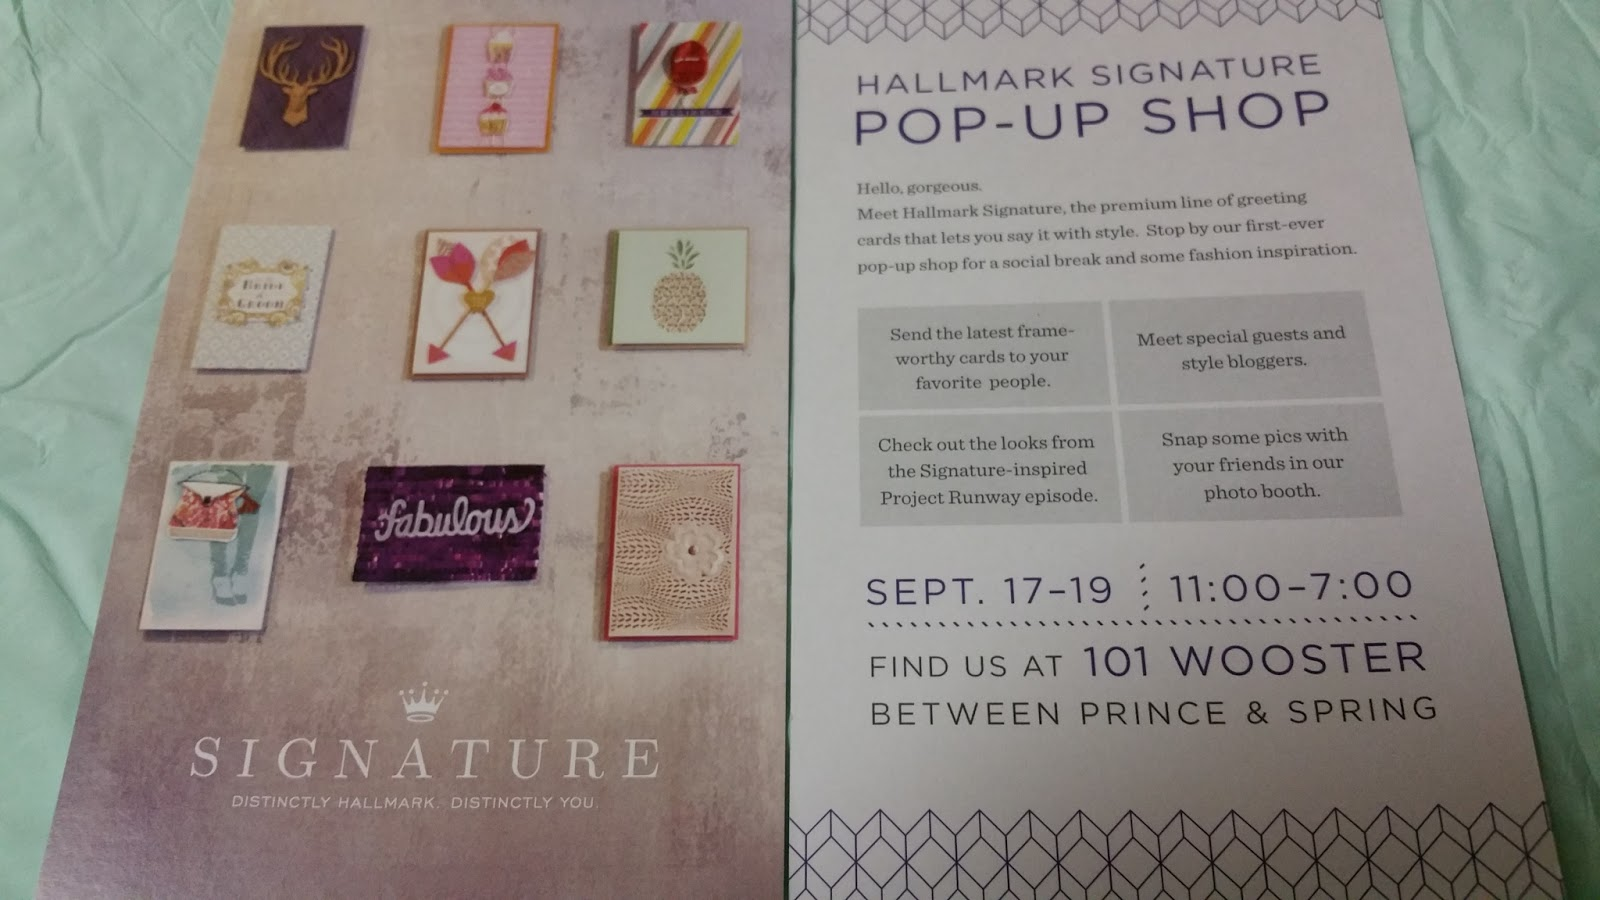 Terresas steals and deals ends 919 hallmark signature pop hallmark signature pop up shop ends saturday september 19 2015 at 7pm 101 wooster street between prince and spring street fandeluxe Choice Image